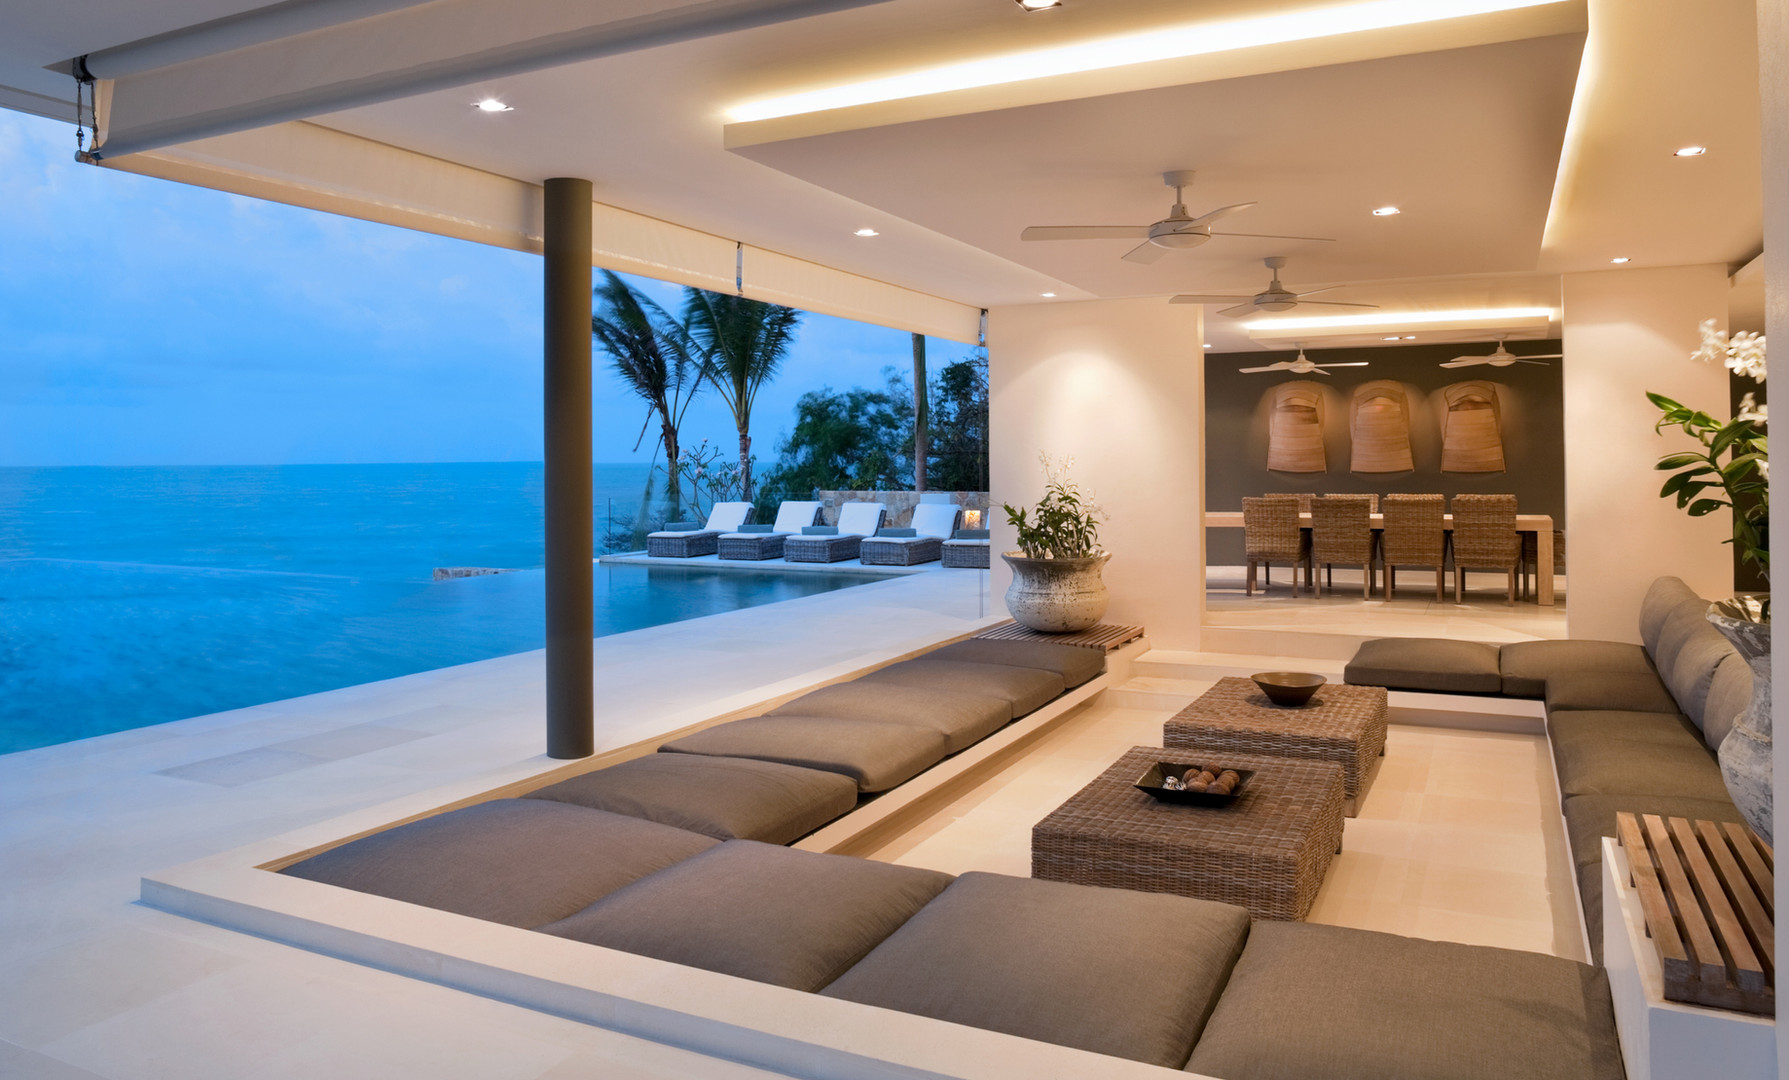 Sunken Outdoor Living & Pool